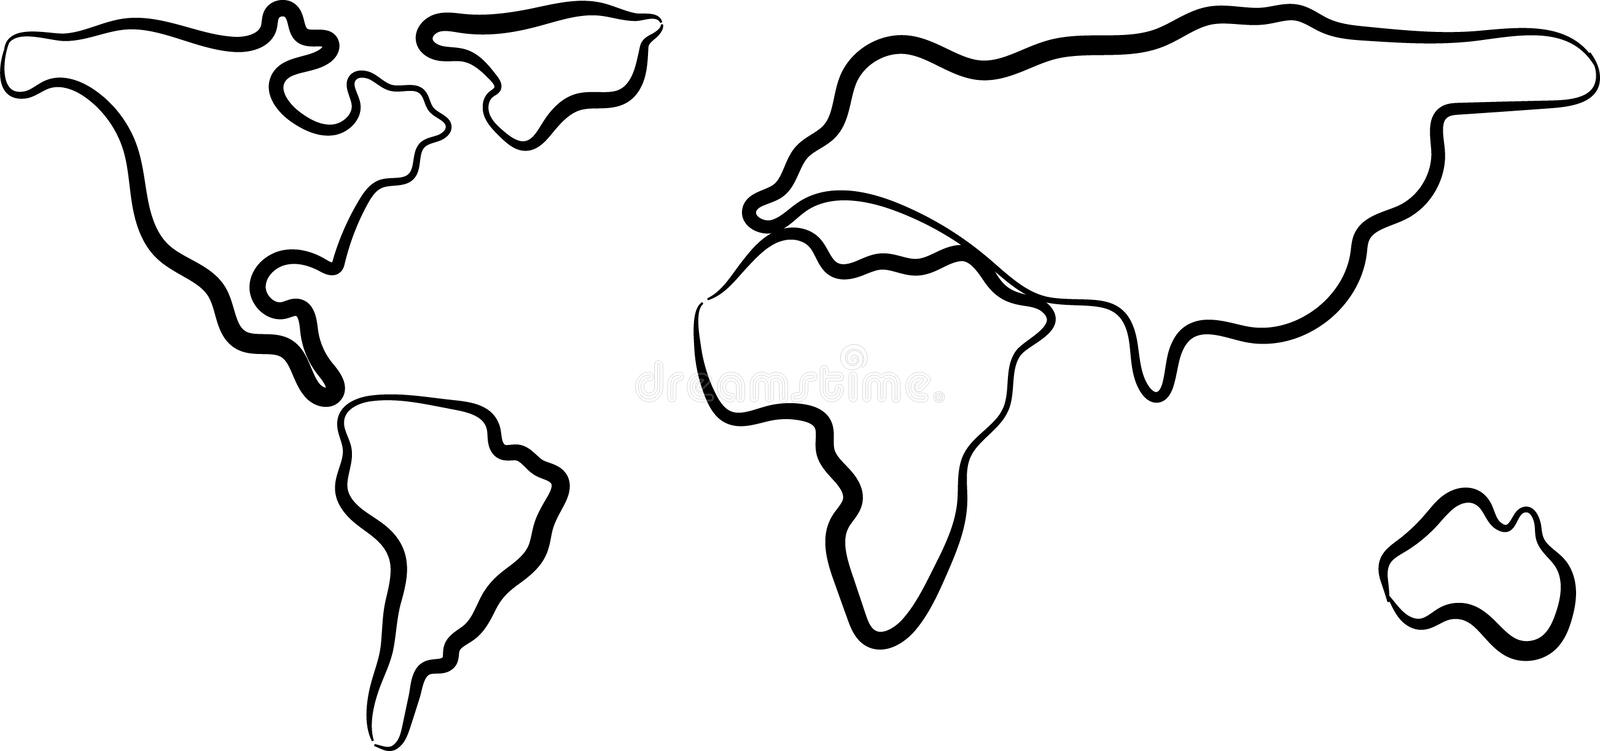 Rough sketch of black World map on white. Vector illustration. Rough sketch of black World map on white background. Vector illustration. Outlines. Contours of royalty free illustration